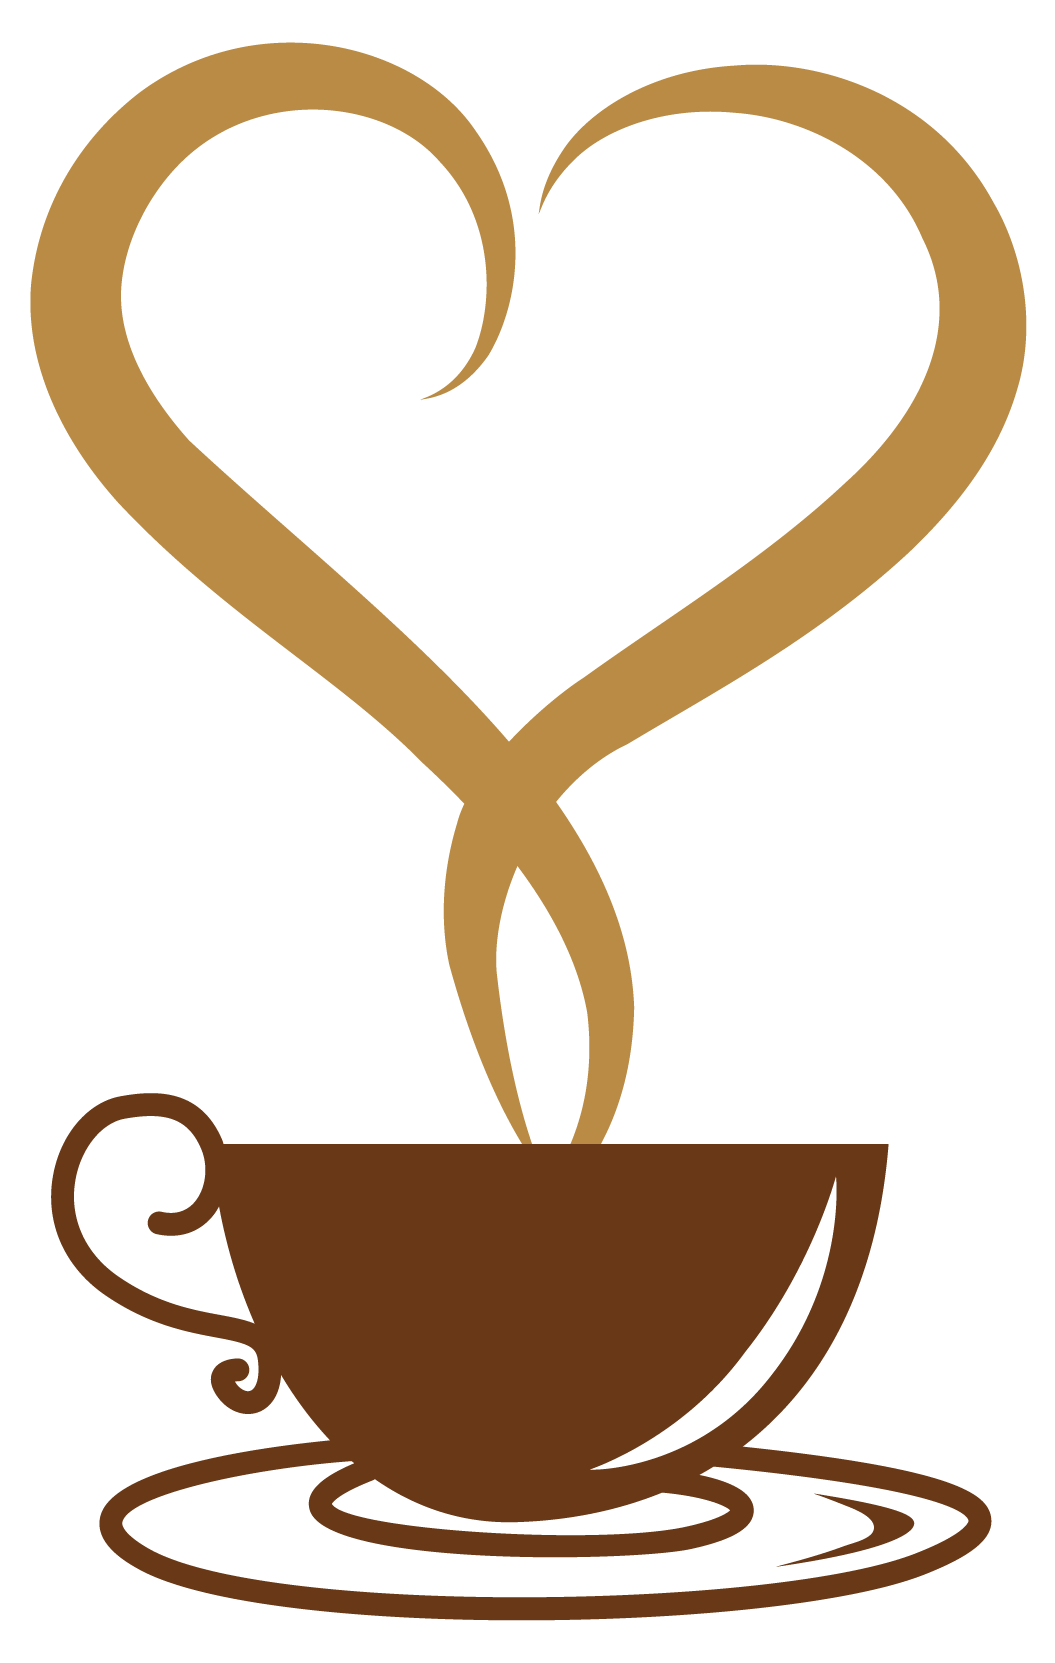 small resolution of coffee cup starbucks cup clipart top pictures gallery image 14122